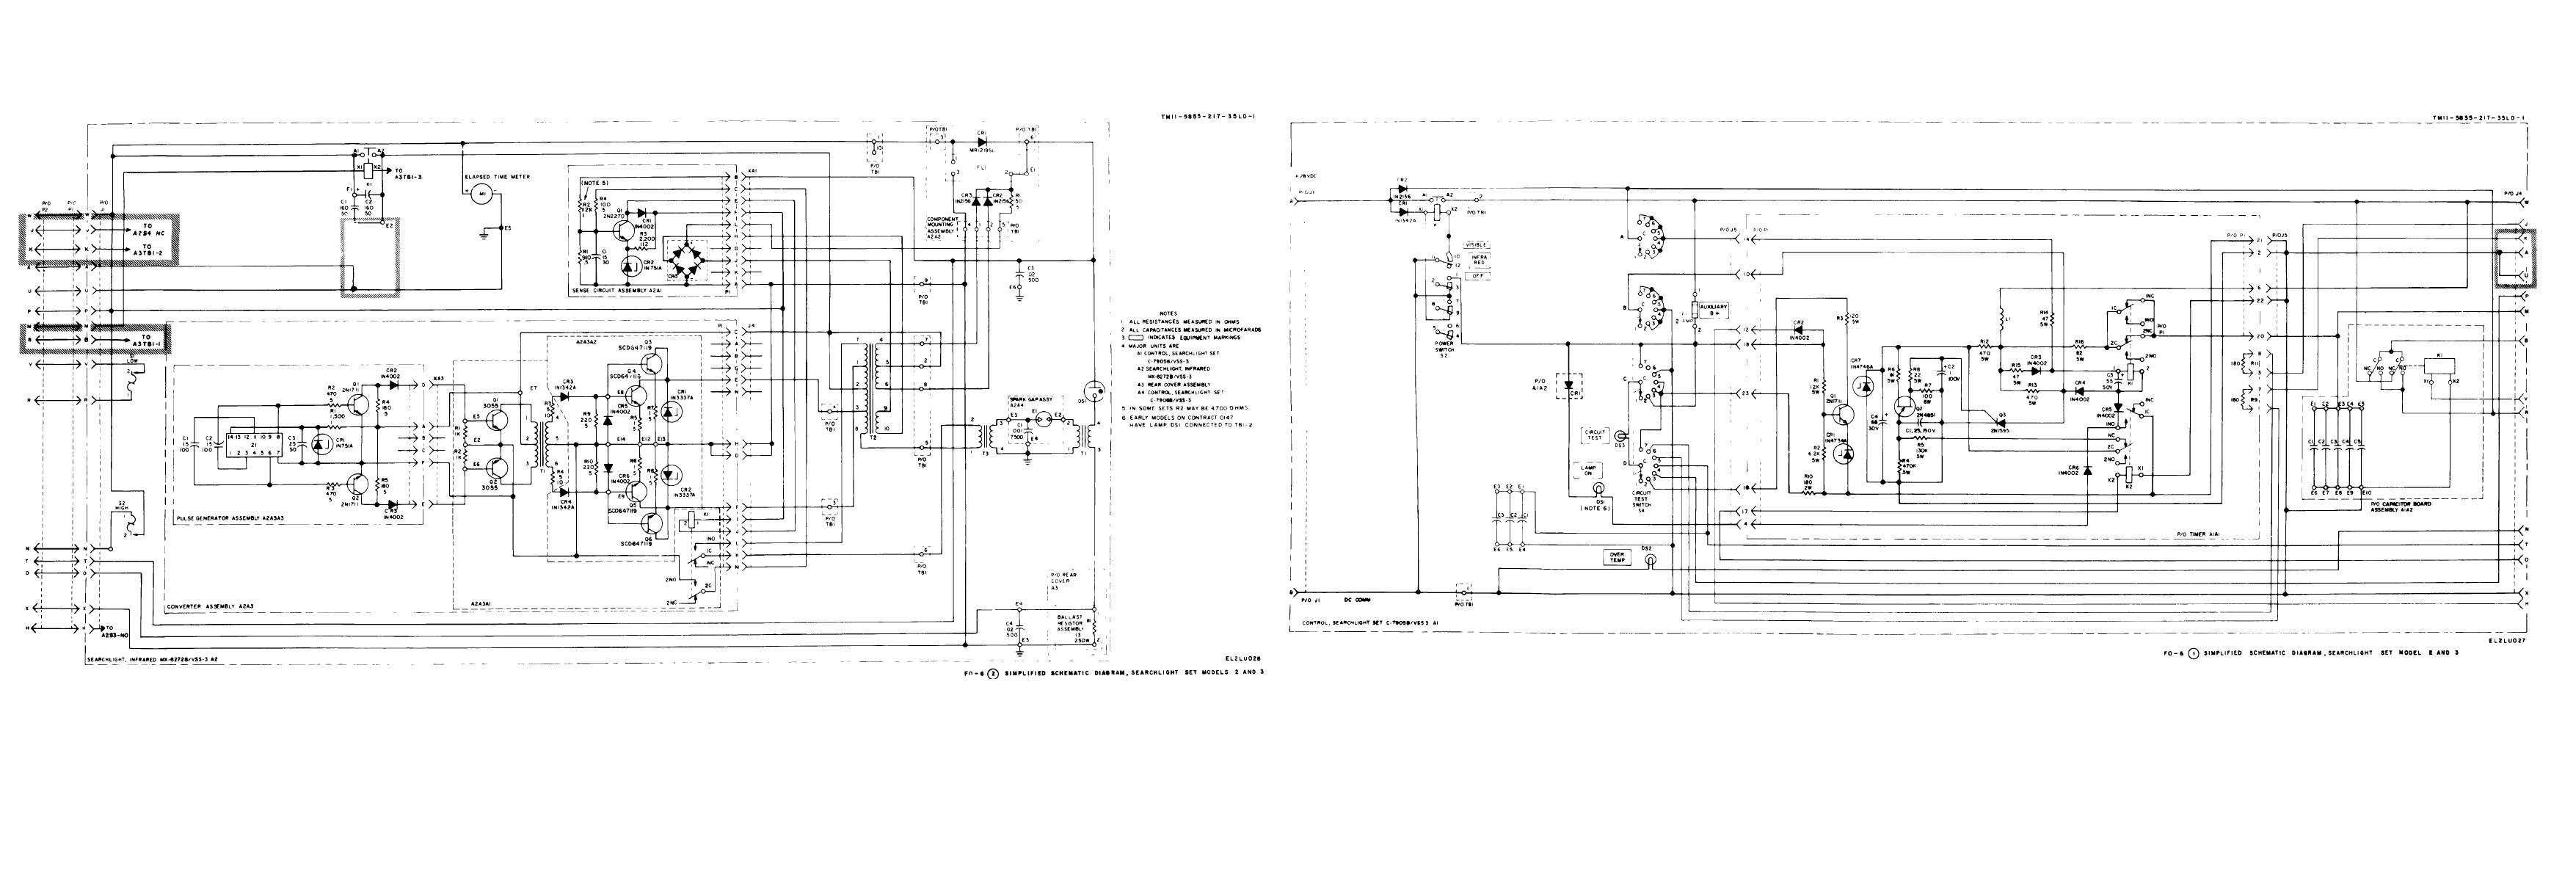 Fo 6 Y Simplified Schematic Diagram Searchlight Set Models 2 And 3 Circuitdiagram Tm11 5855 217 35ld 1